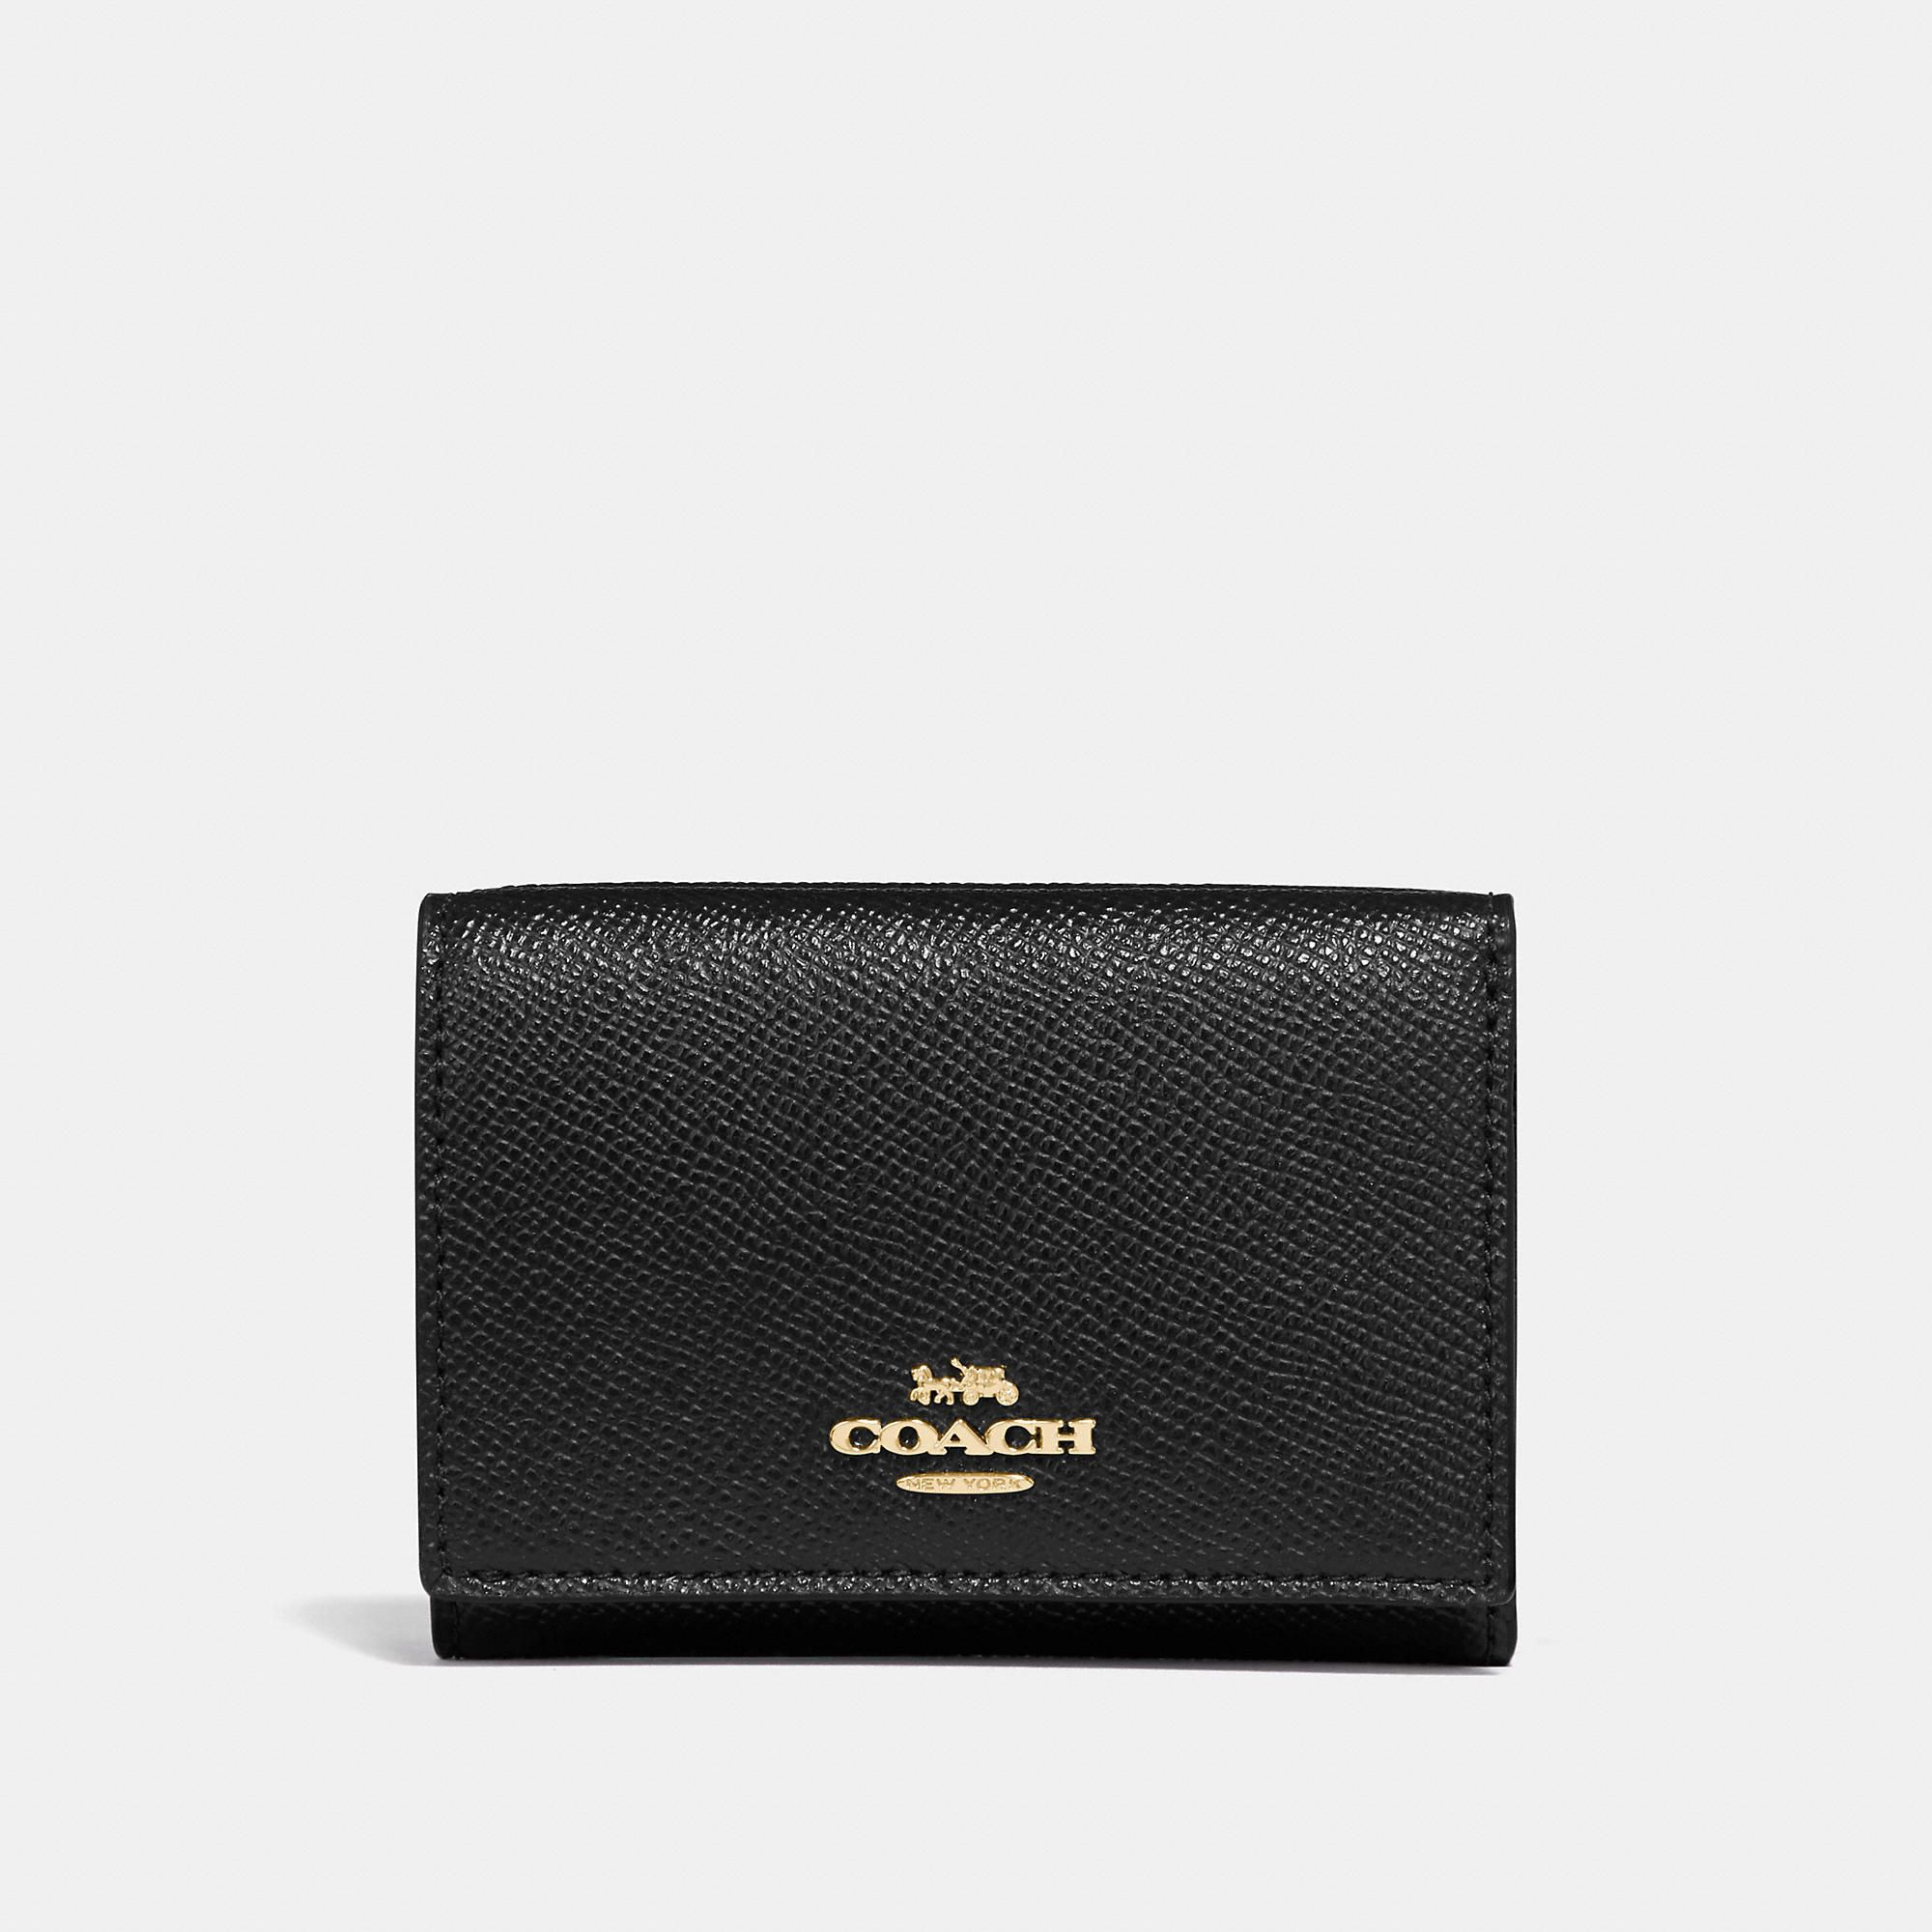 936130b93f Small flap wallet in 2019 | Products | Wallet, Leather trifold ...